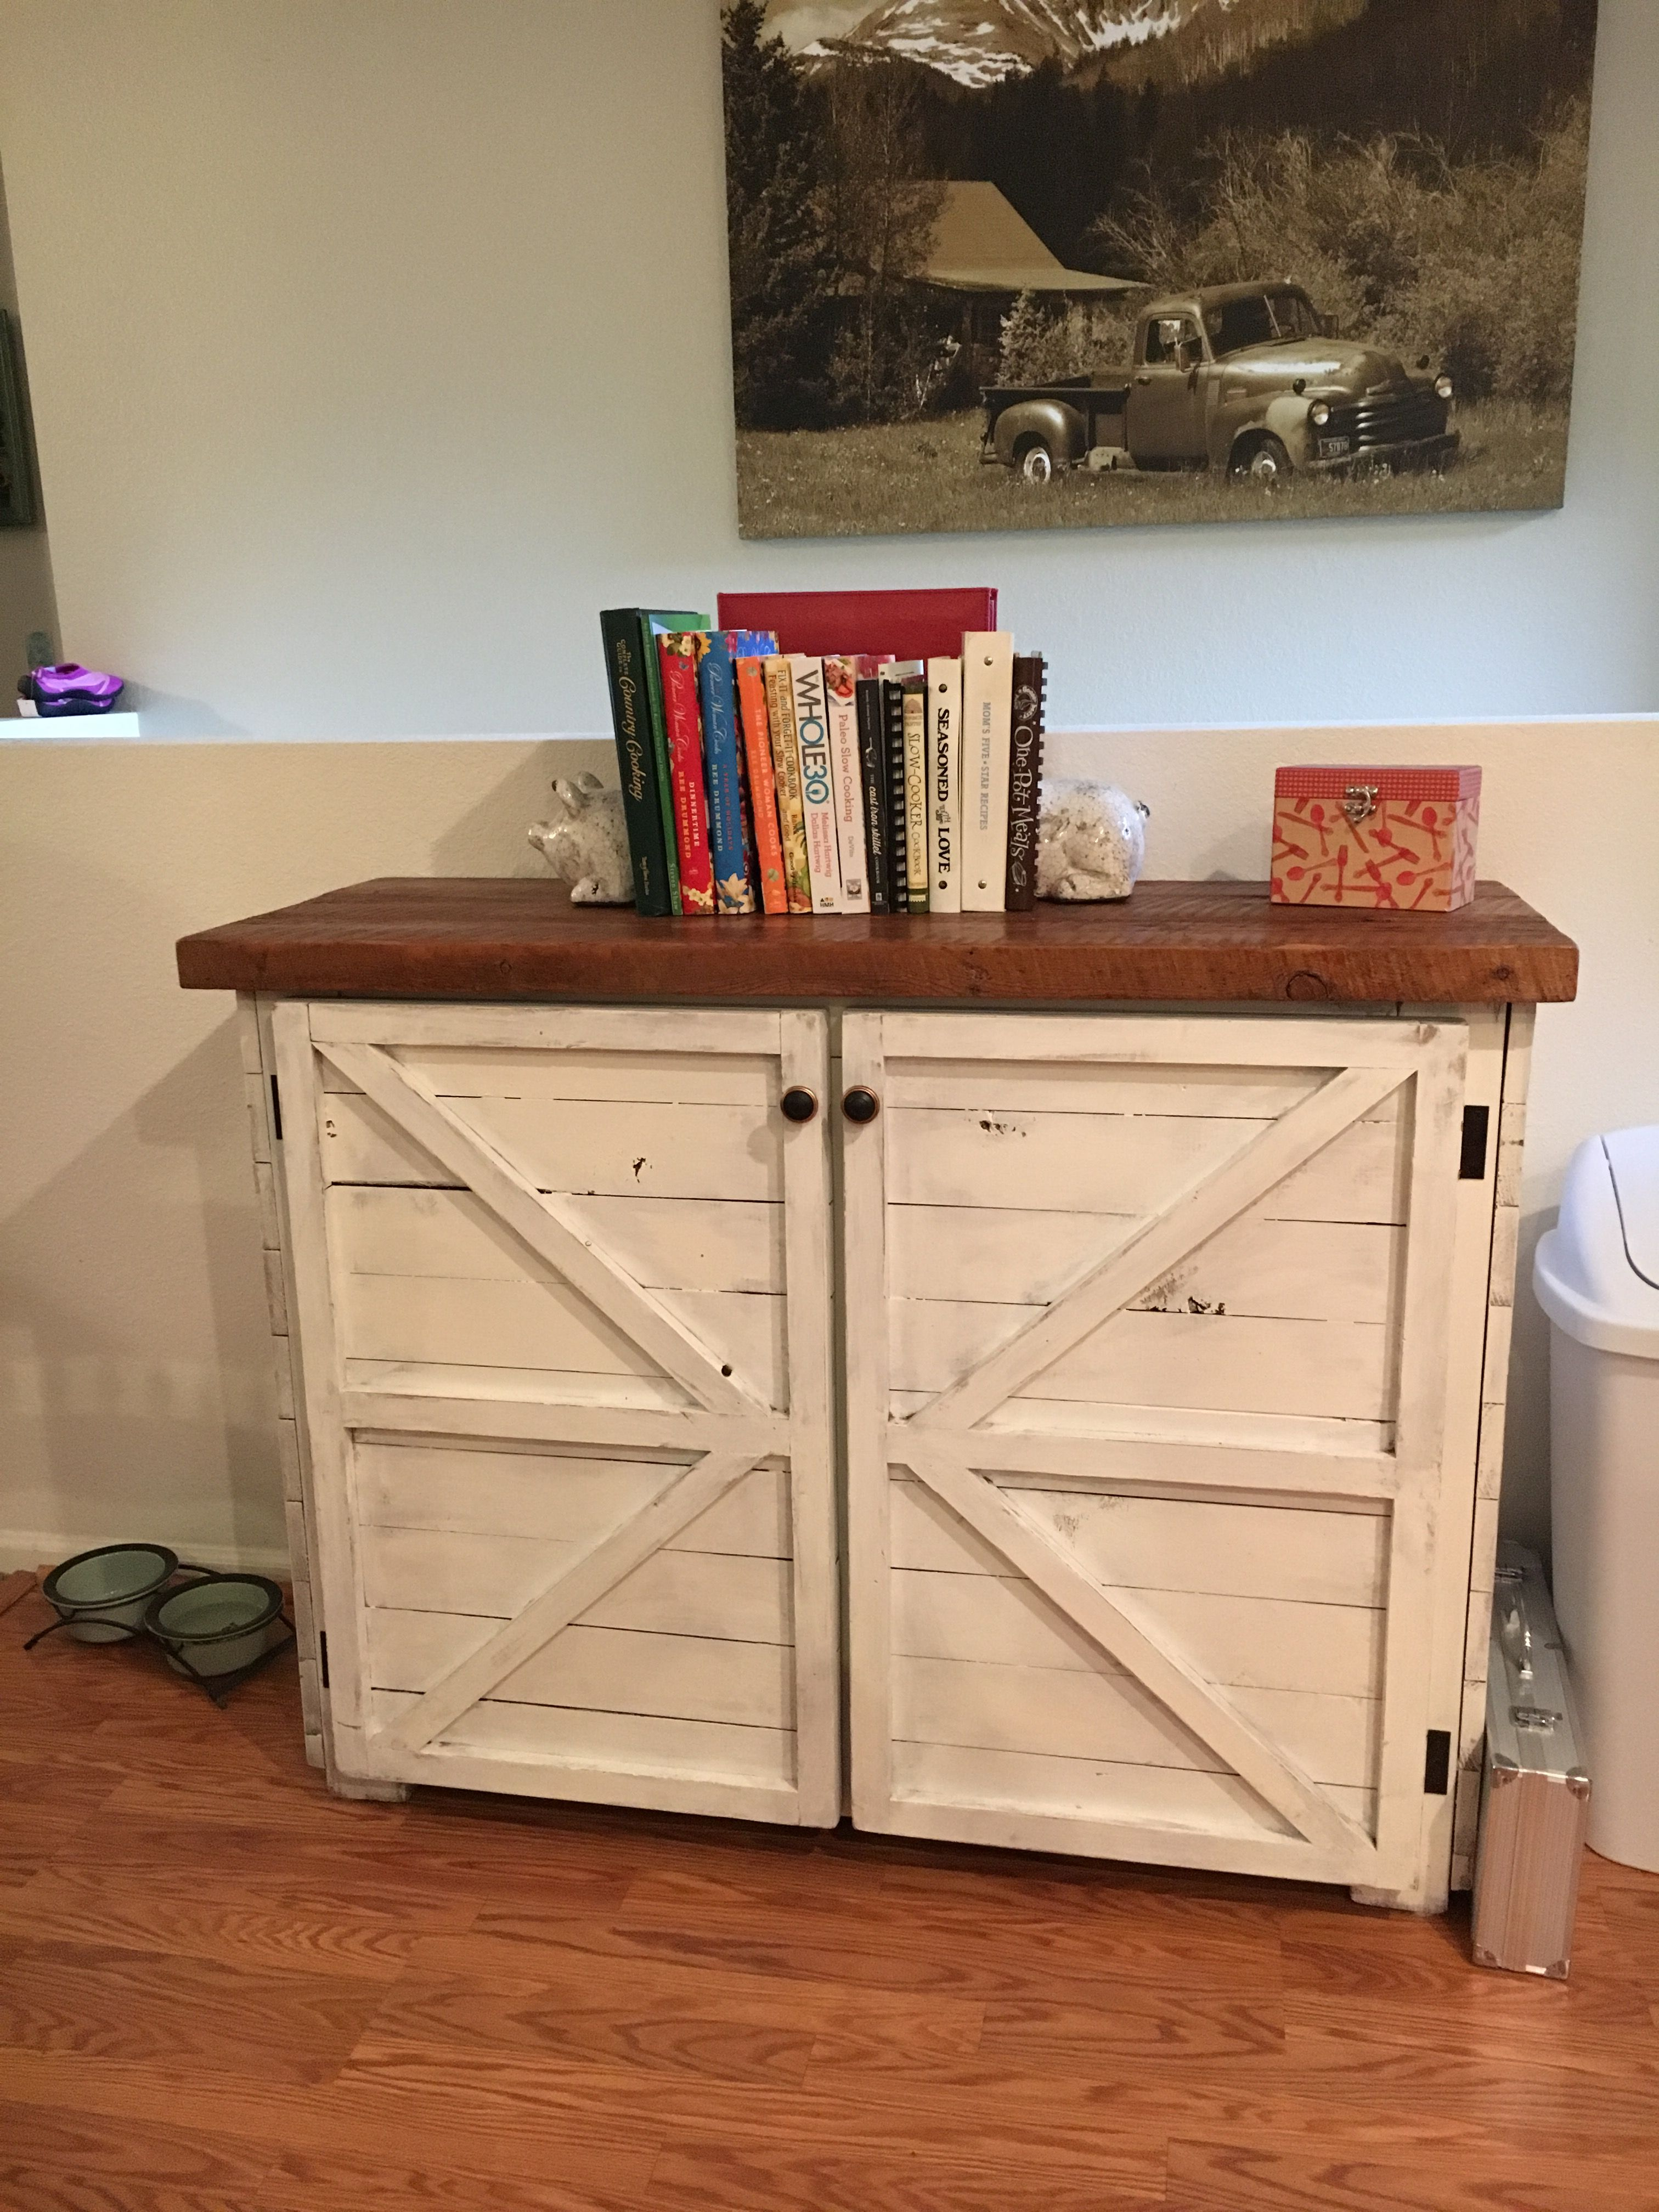 Storage Cabinet Farmhouse Style Mg Table Co Mgtables Com With Images Real Wood Furniture Wood Furniture Wood Table